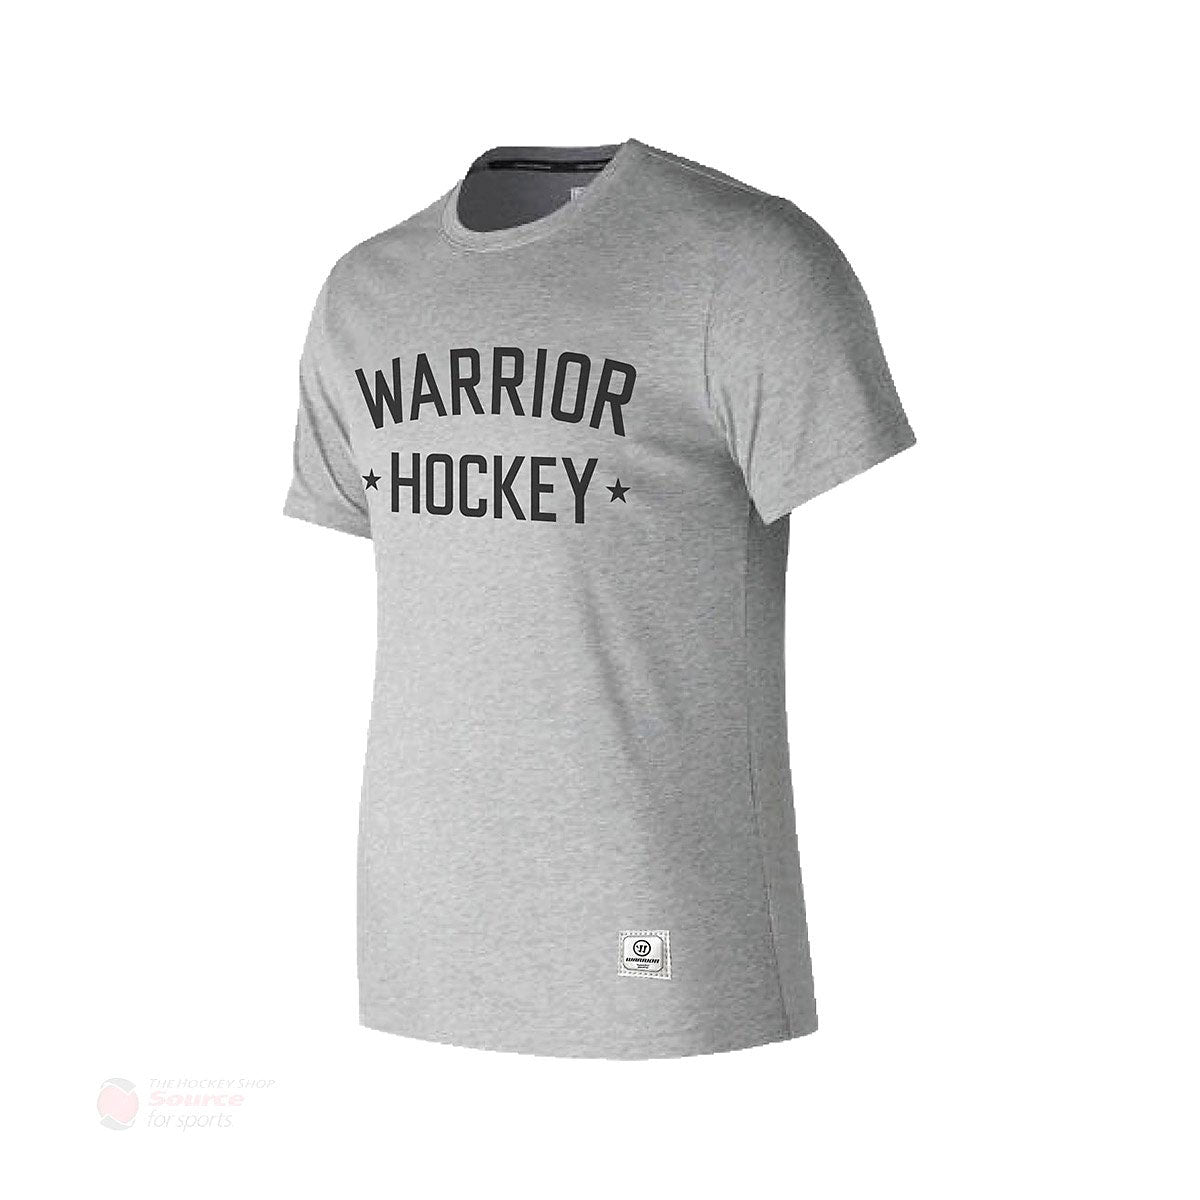 Warrior Hockey Street Men's Shirt